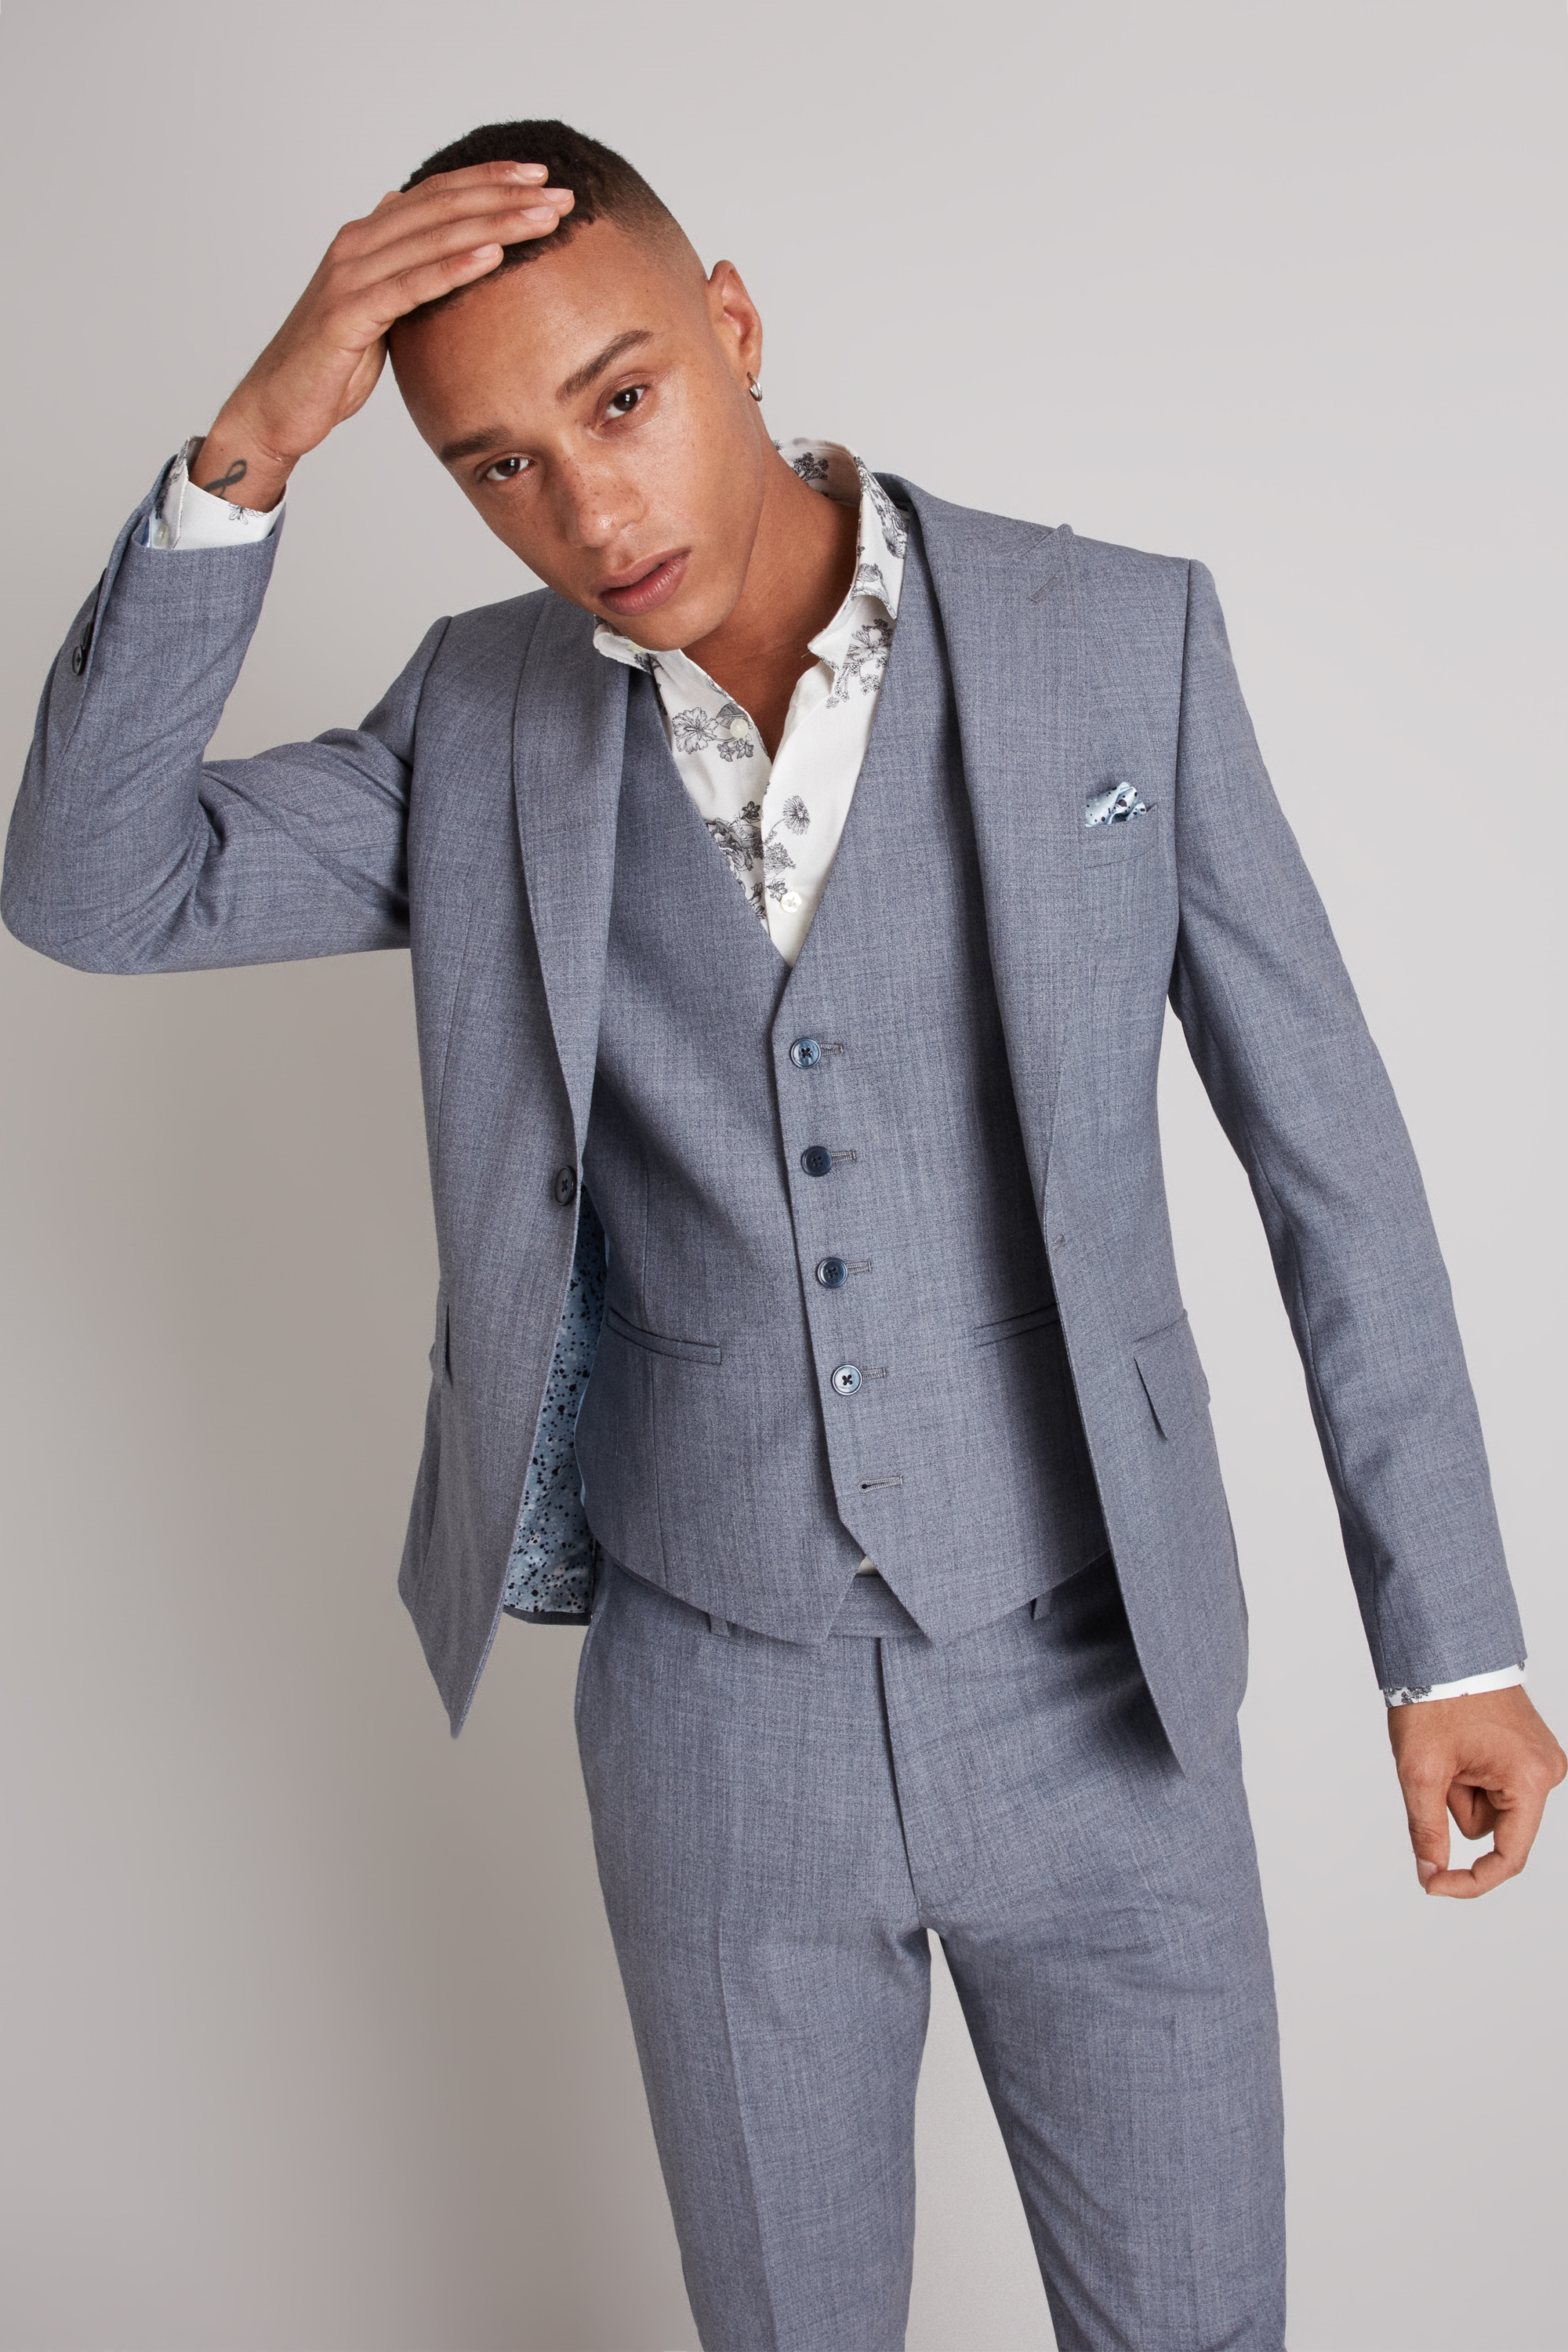 fb72faf2a95 Details about Moss London Mens Suit Jacket Skinny Fit Light Blue Crepe One  Button Mix   Match